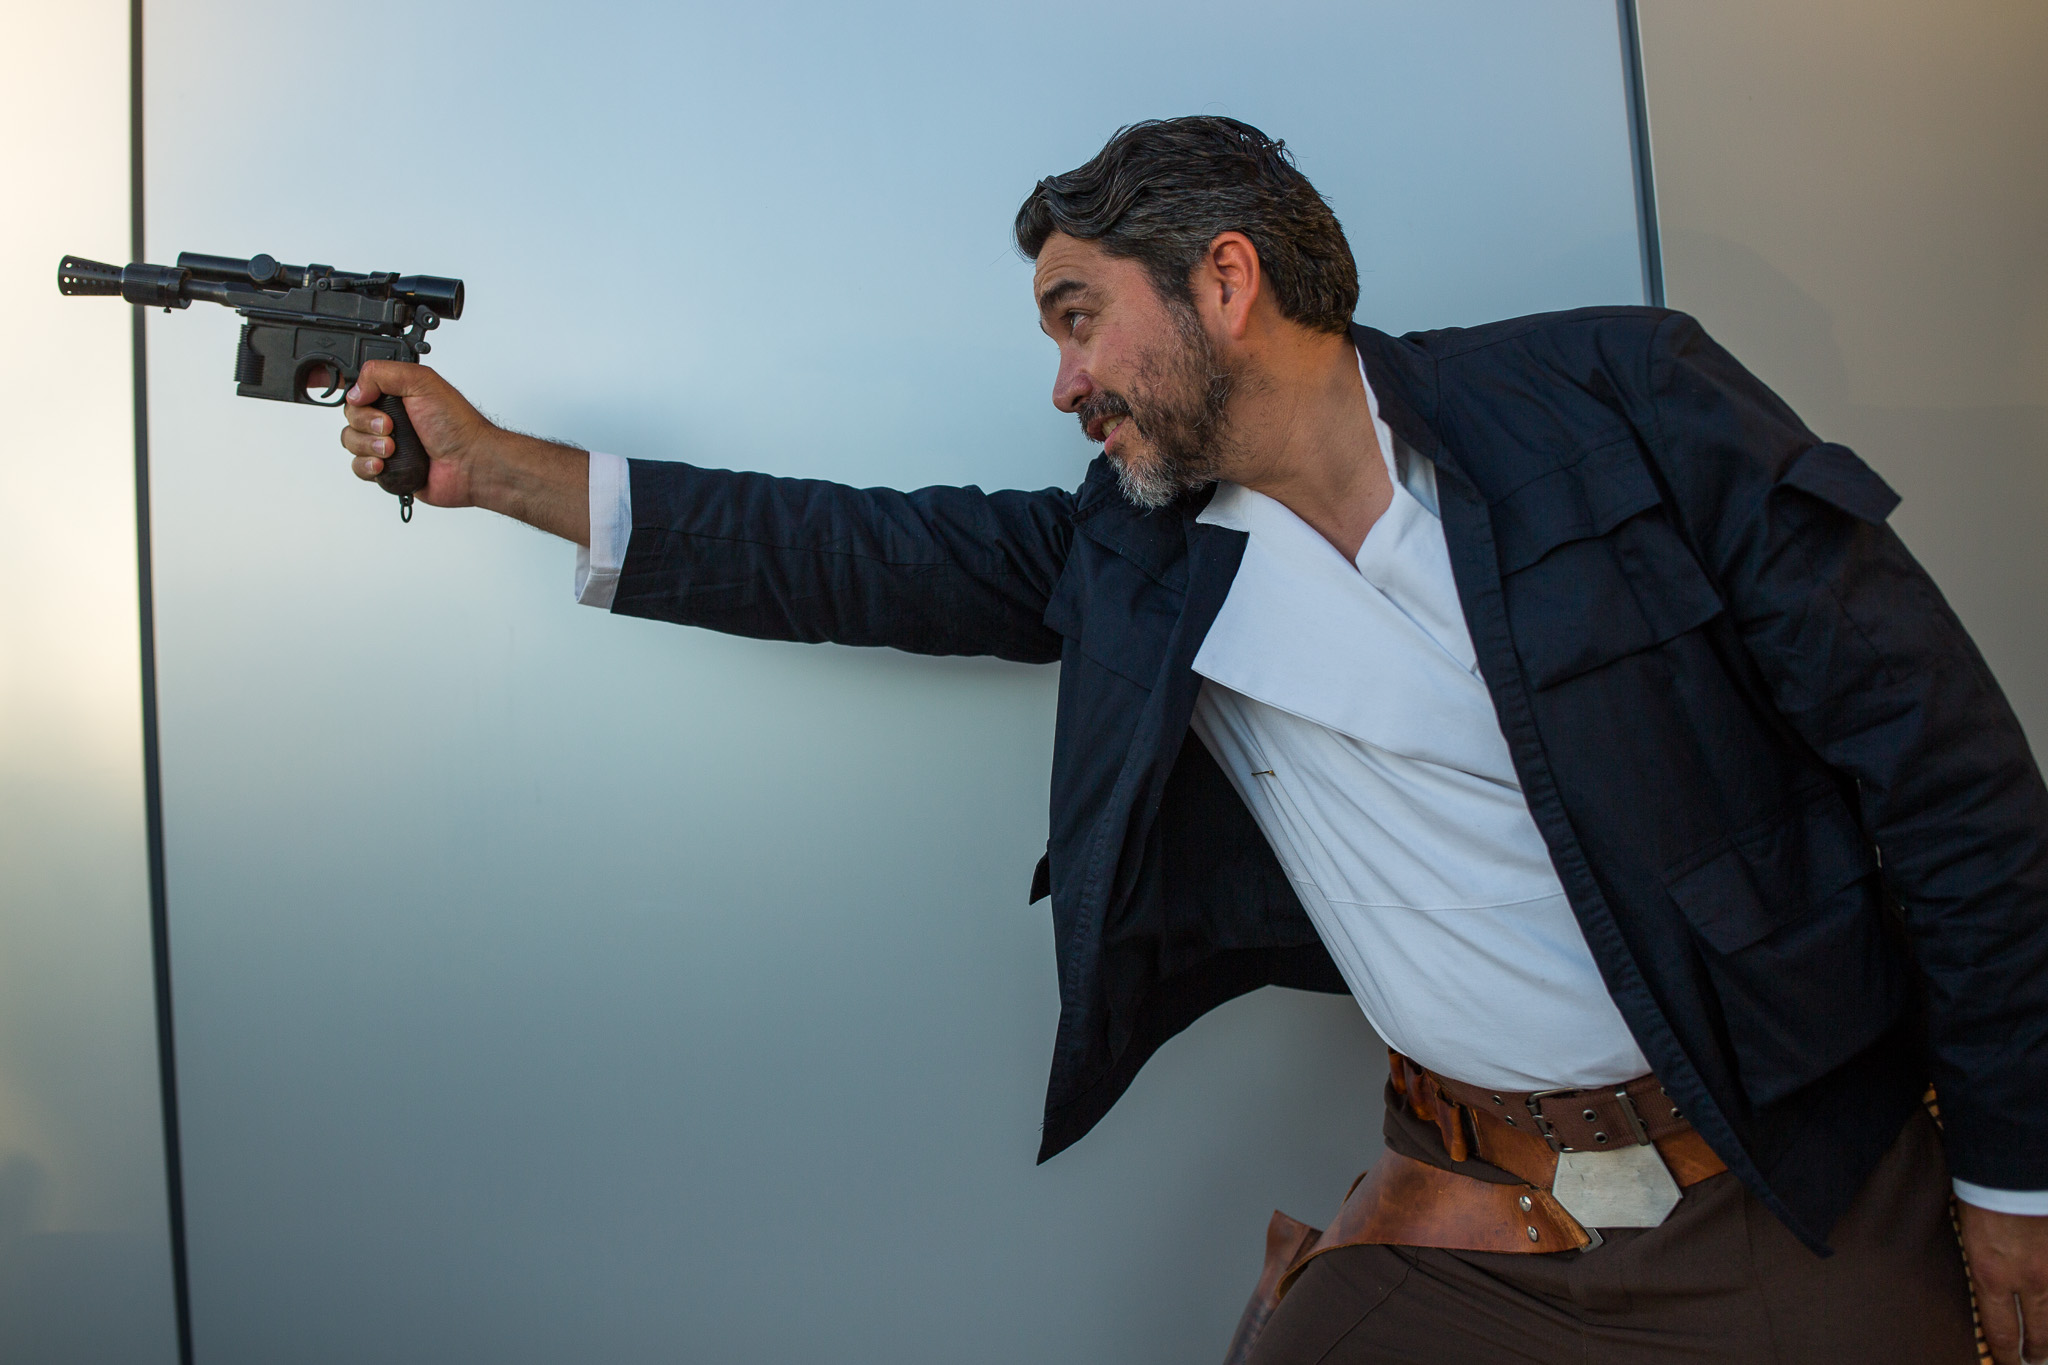 Councilman Roberto Treviño (D1) poses as Han Solo during the event. Photo by Scott Ball.